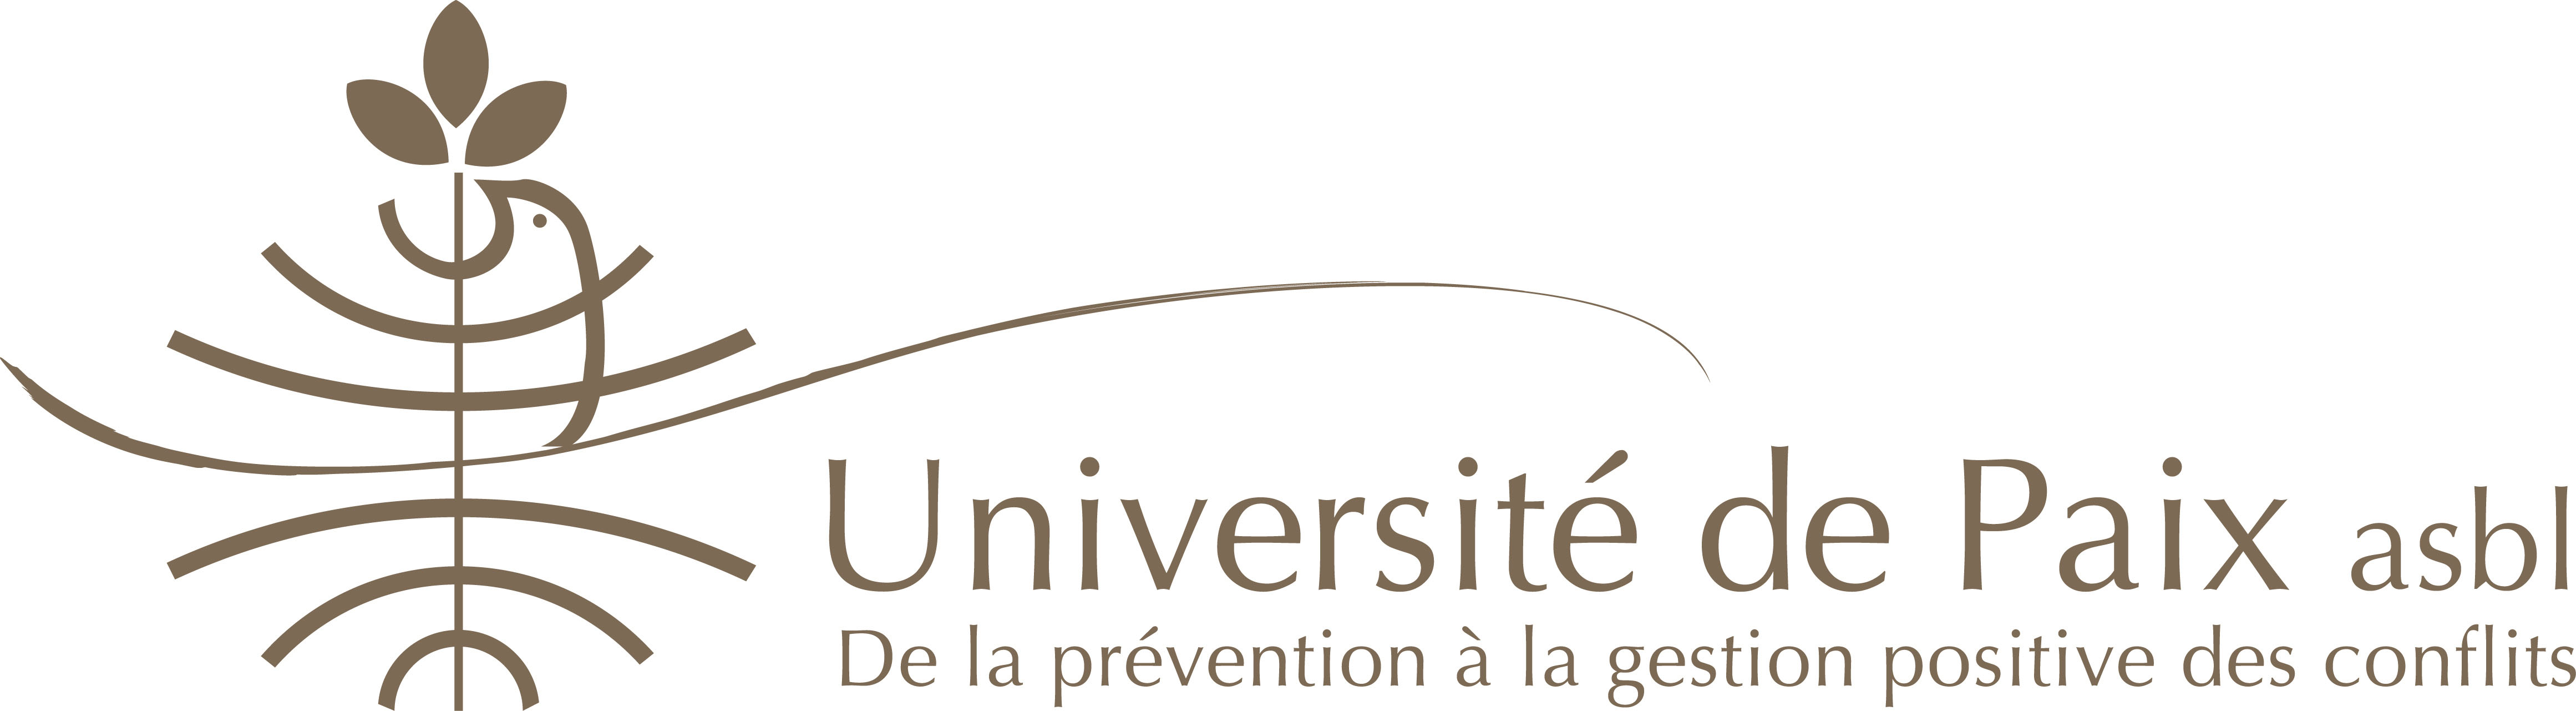 UP Université de Paix Asbl